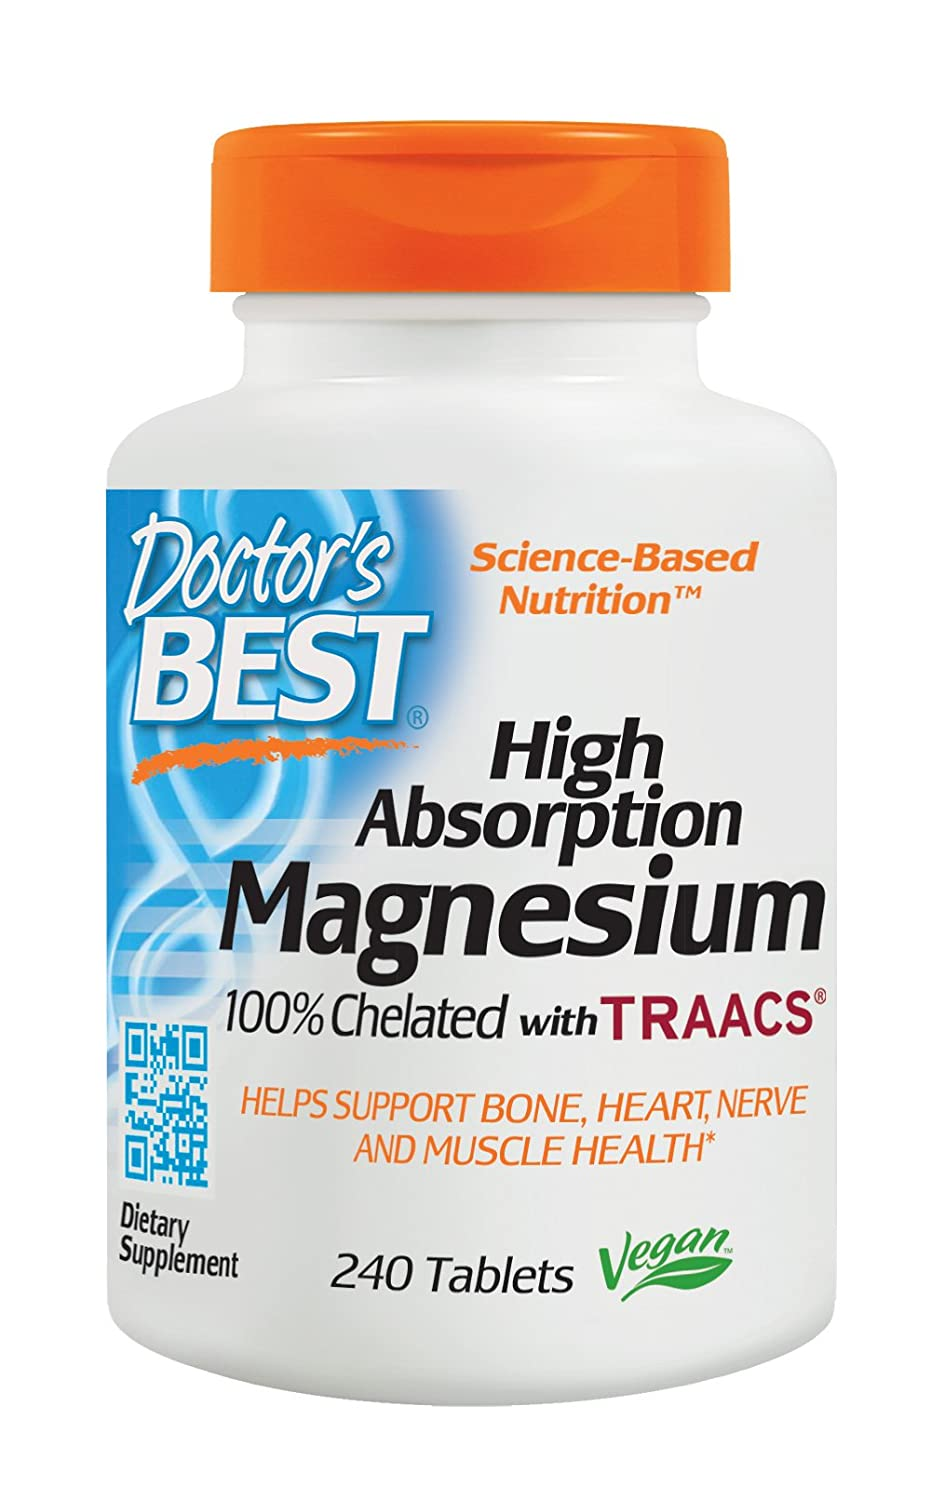 Doctors Best High Absorption Magnesium Supplements